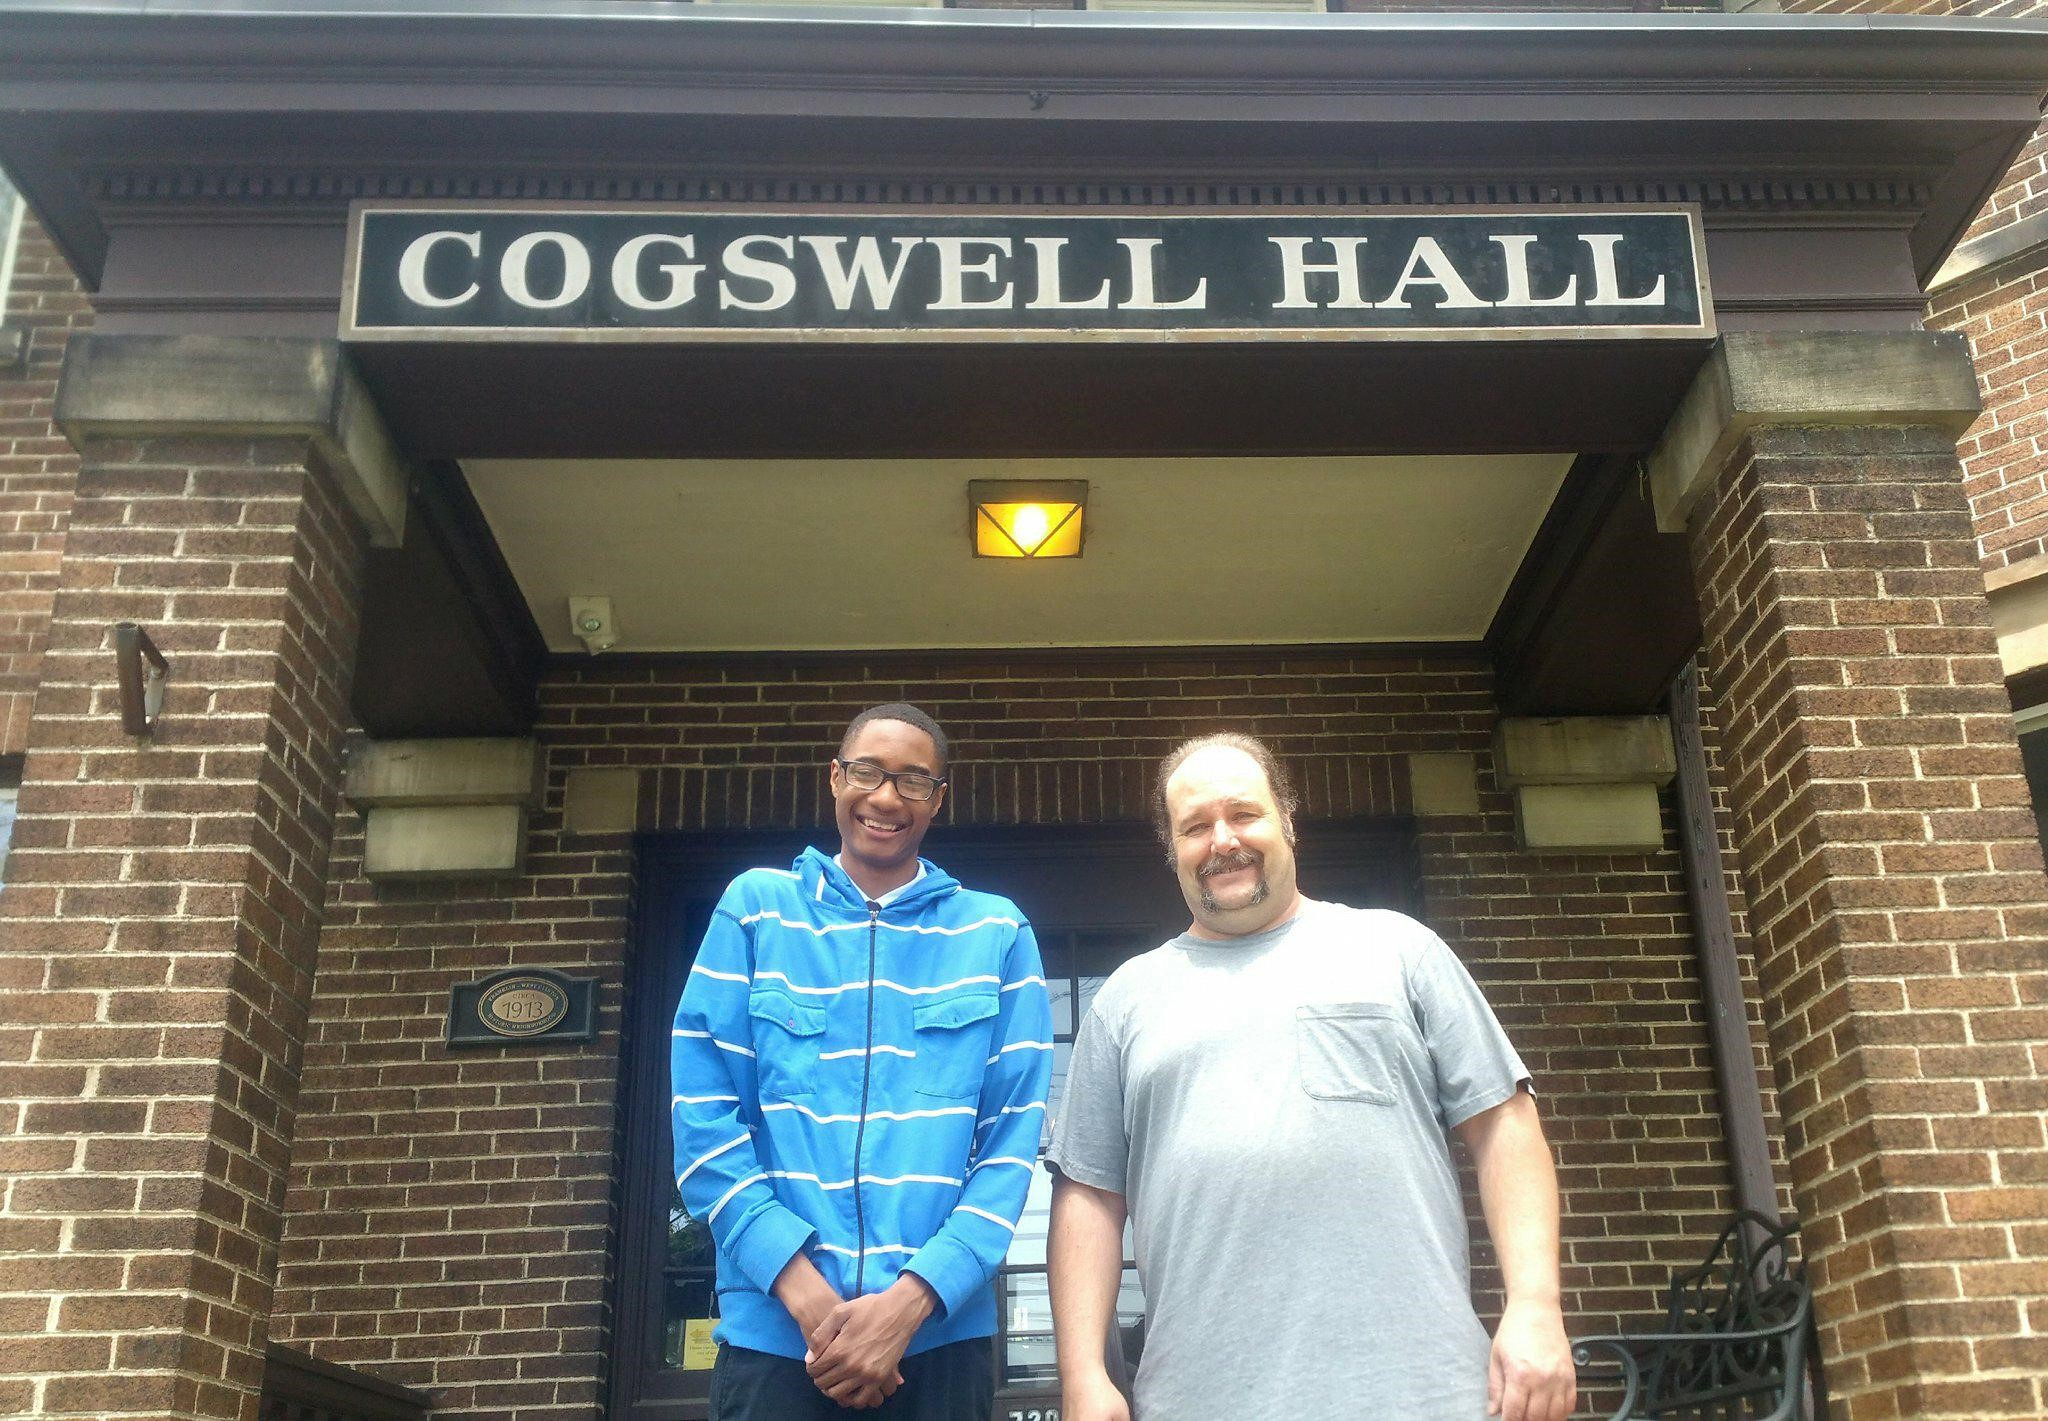 Reflecting on 4 years at Cogswell Hall